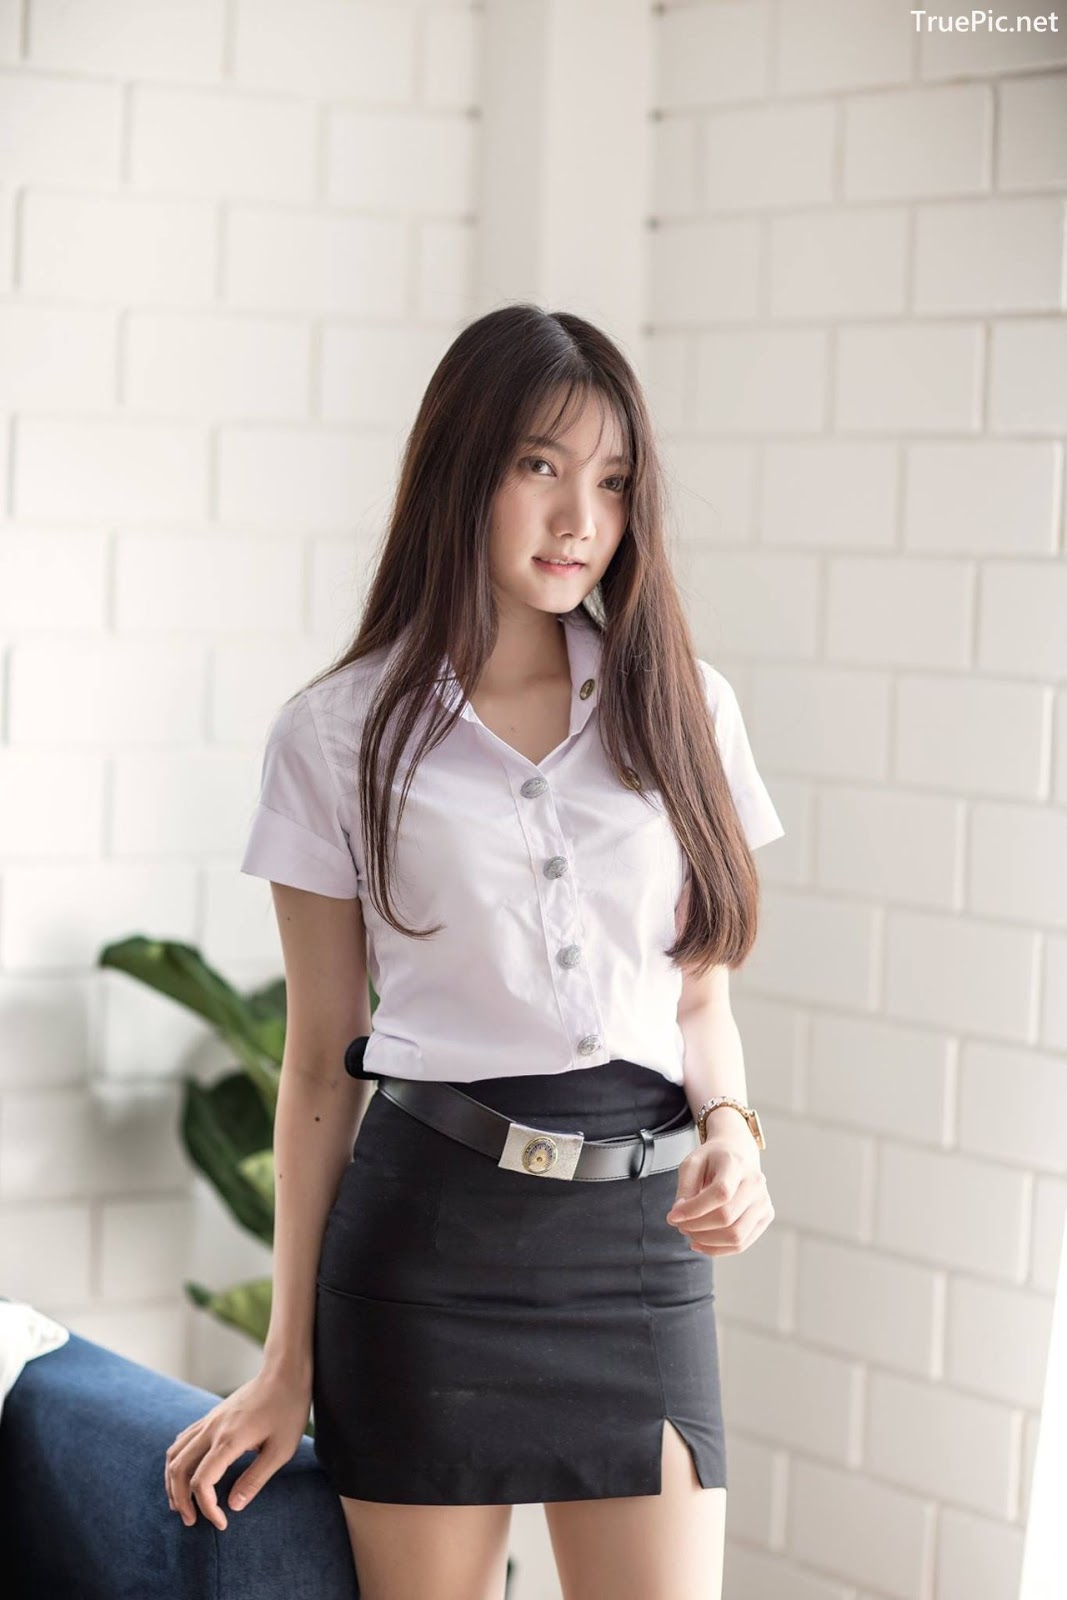 Image-Thailand-Cute-Model-Creammy-Chanama-Concept-Innocent-Student-Girl-TruePic.net- Picture-6